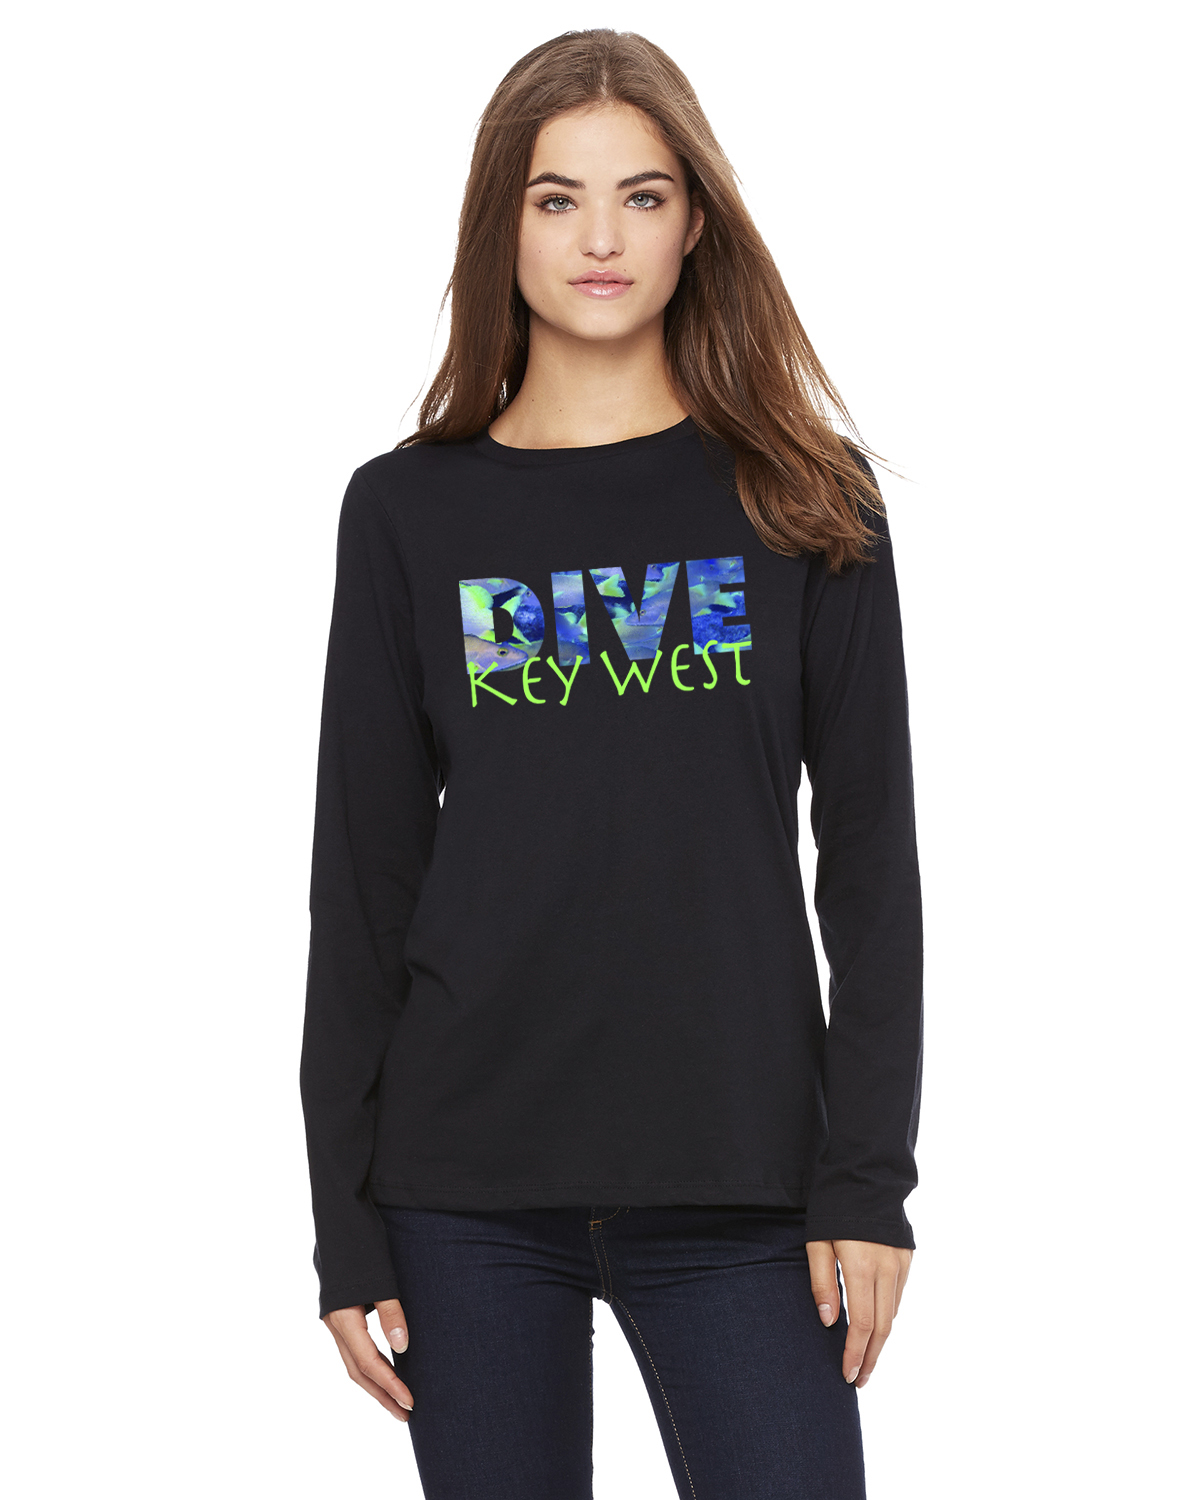 Women's Long Sleeve DIVE Key West T-Shirt (Black)